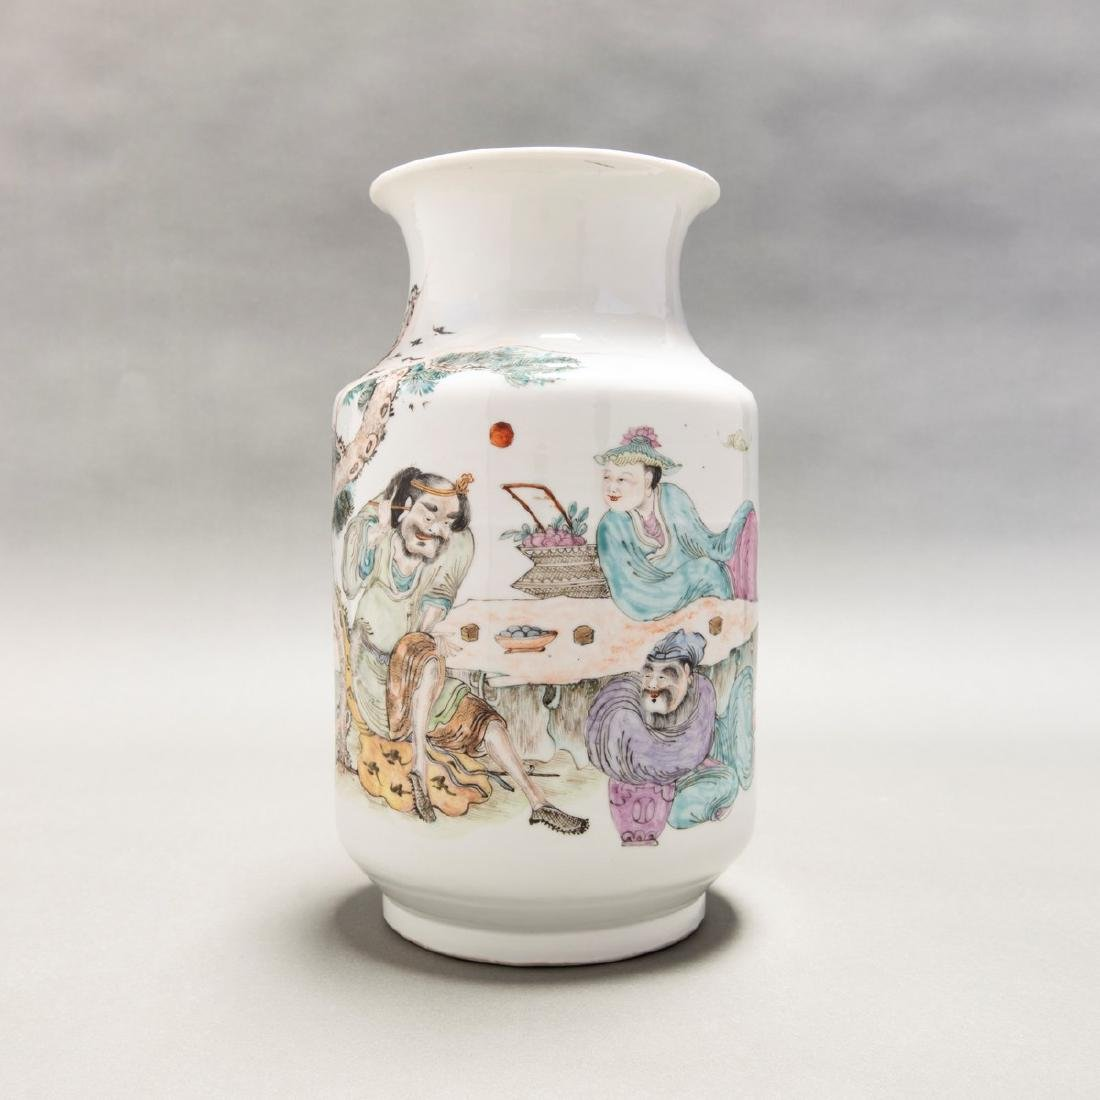 A CHINESE ANTIQUE' FAMILLE ROSE FIGURE VASE, QING